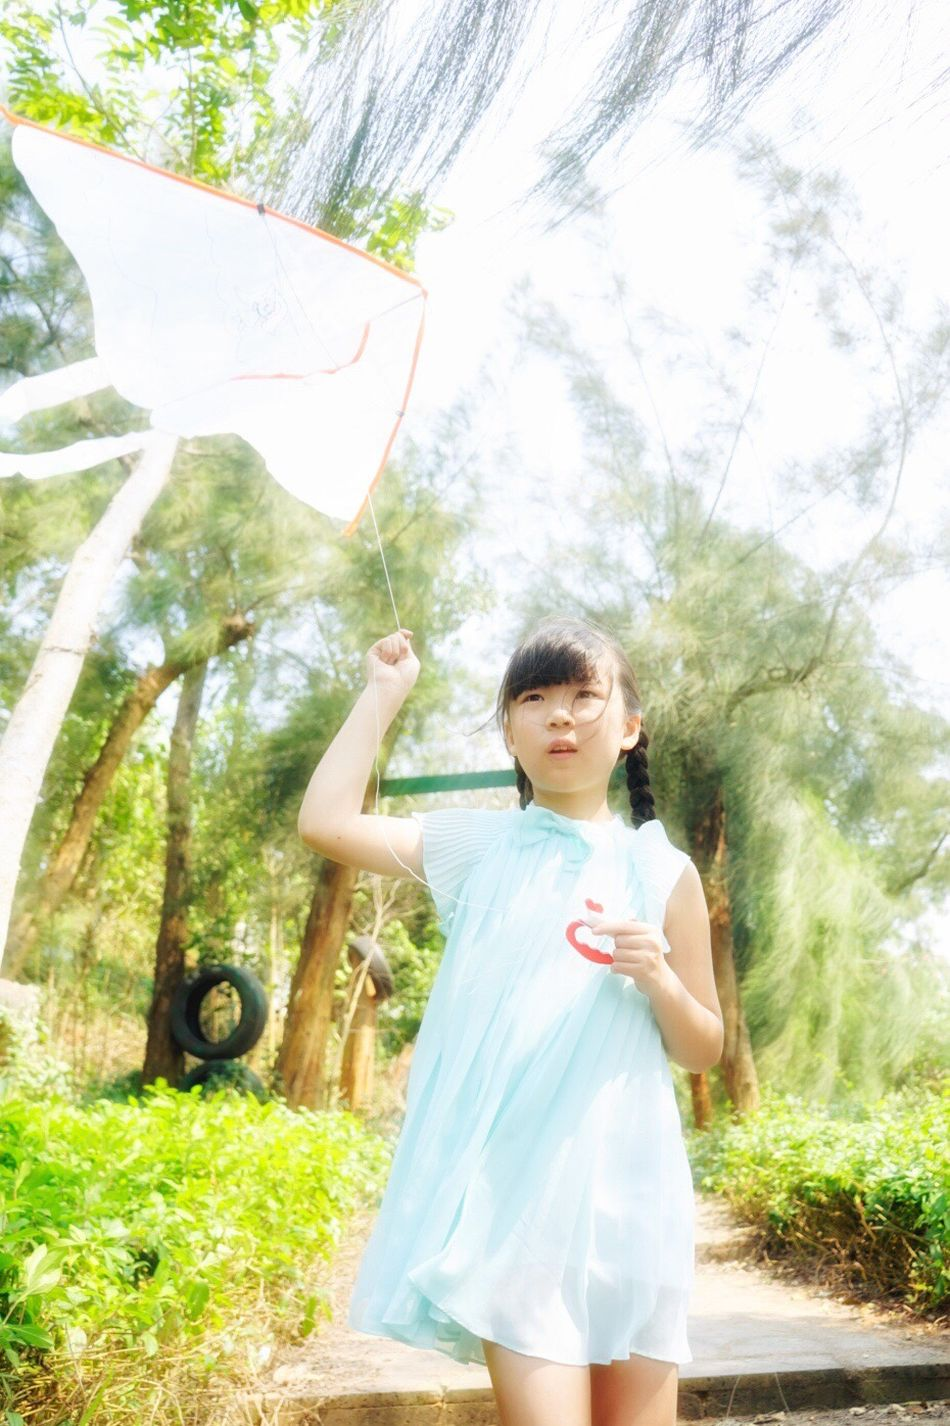 My little fairies❤️ Sunlight Child Standing Waist Up One Person Outdoors Children Only Portrait Looking At Camera Sunbeam Childhood One Girl Only Nature Front View Day People Smiling Grass Beauty Tree Flying A Kite